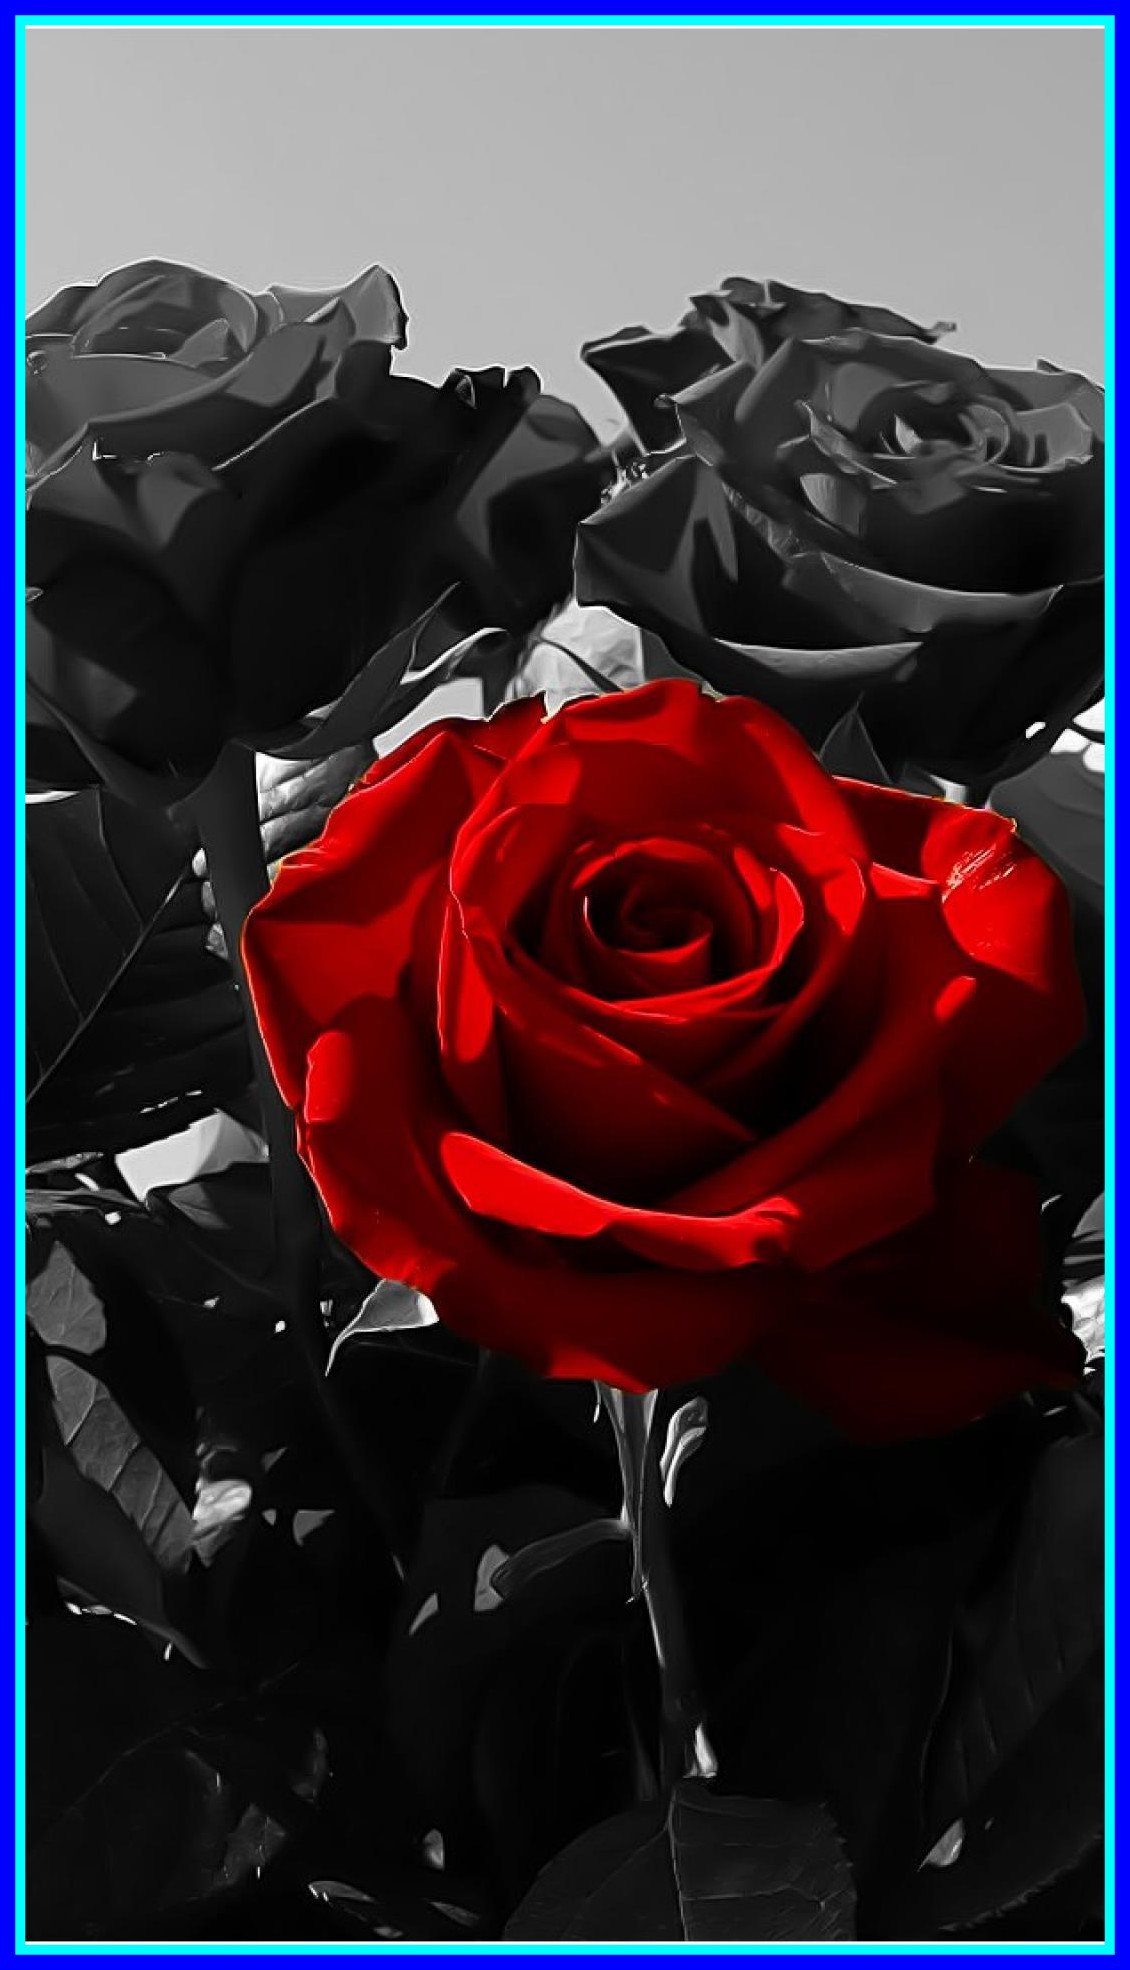 Black Wallpaper With Rose Posted By Ryan Anderson